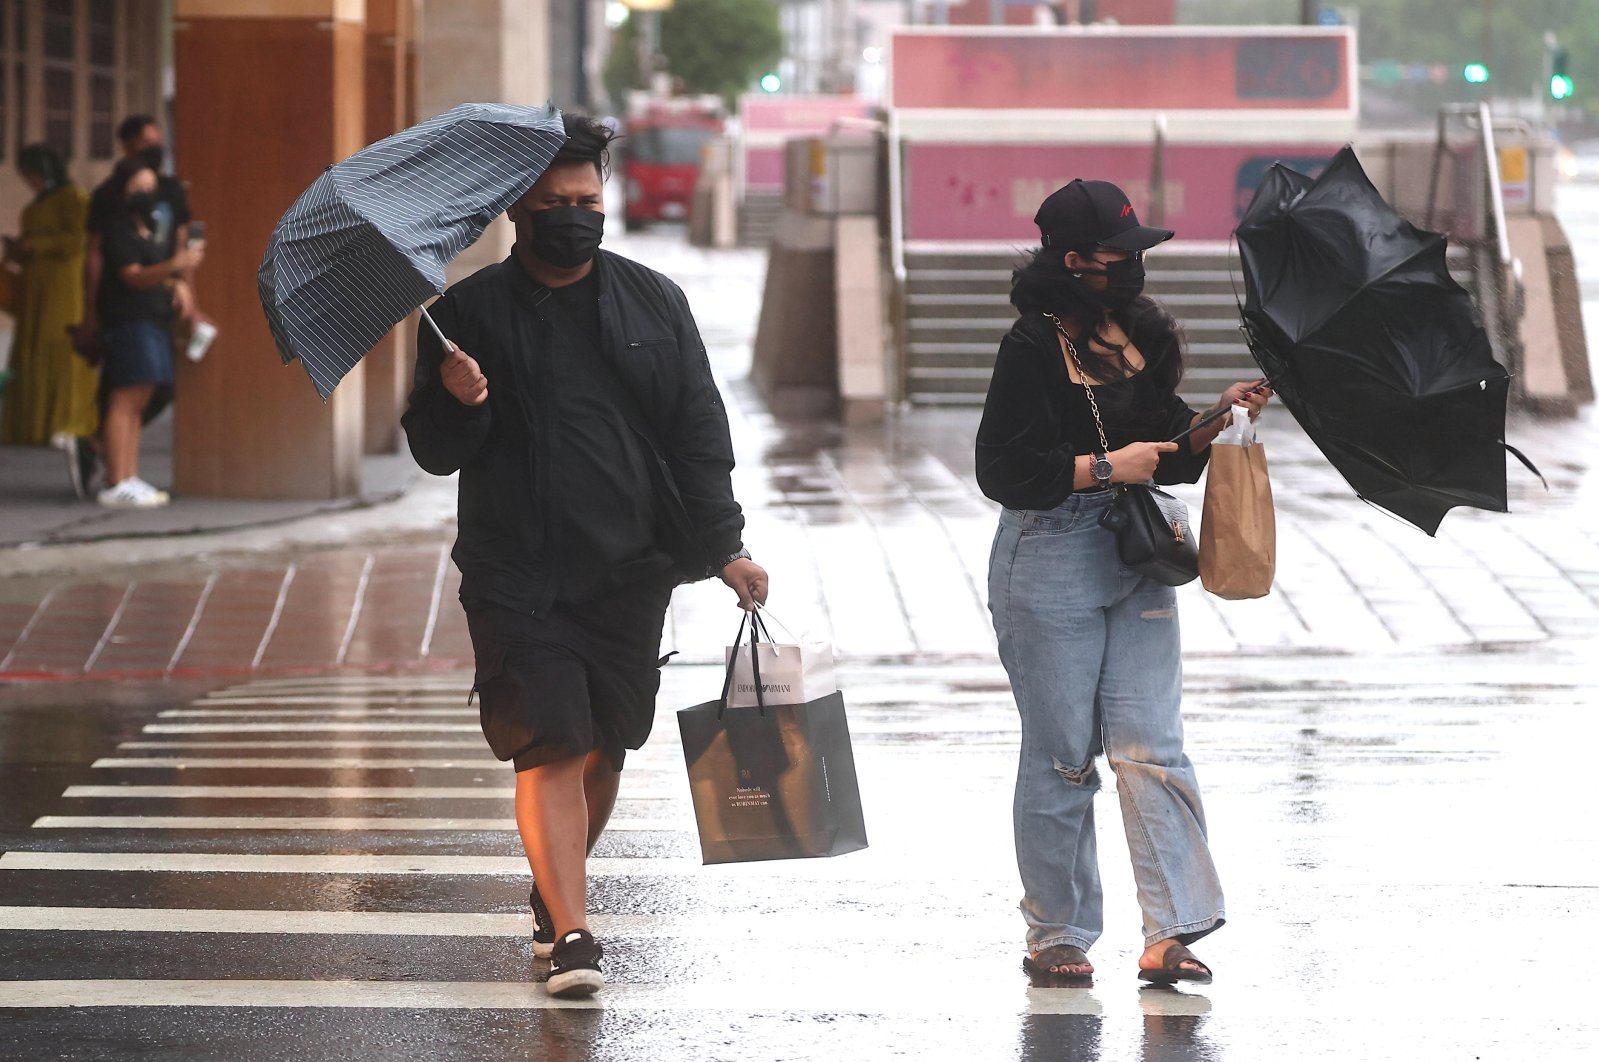 People walk in strong wind and rain caused by Typhoon Chanthu in Taipei, Taiwan, Sept. 12, 2021. (Reuters Photo)